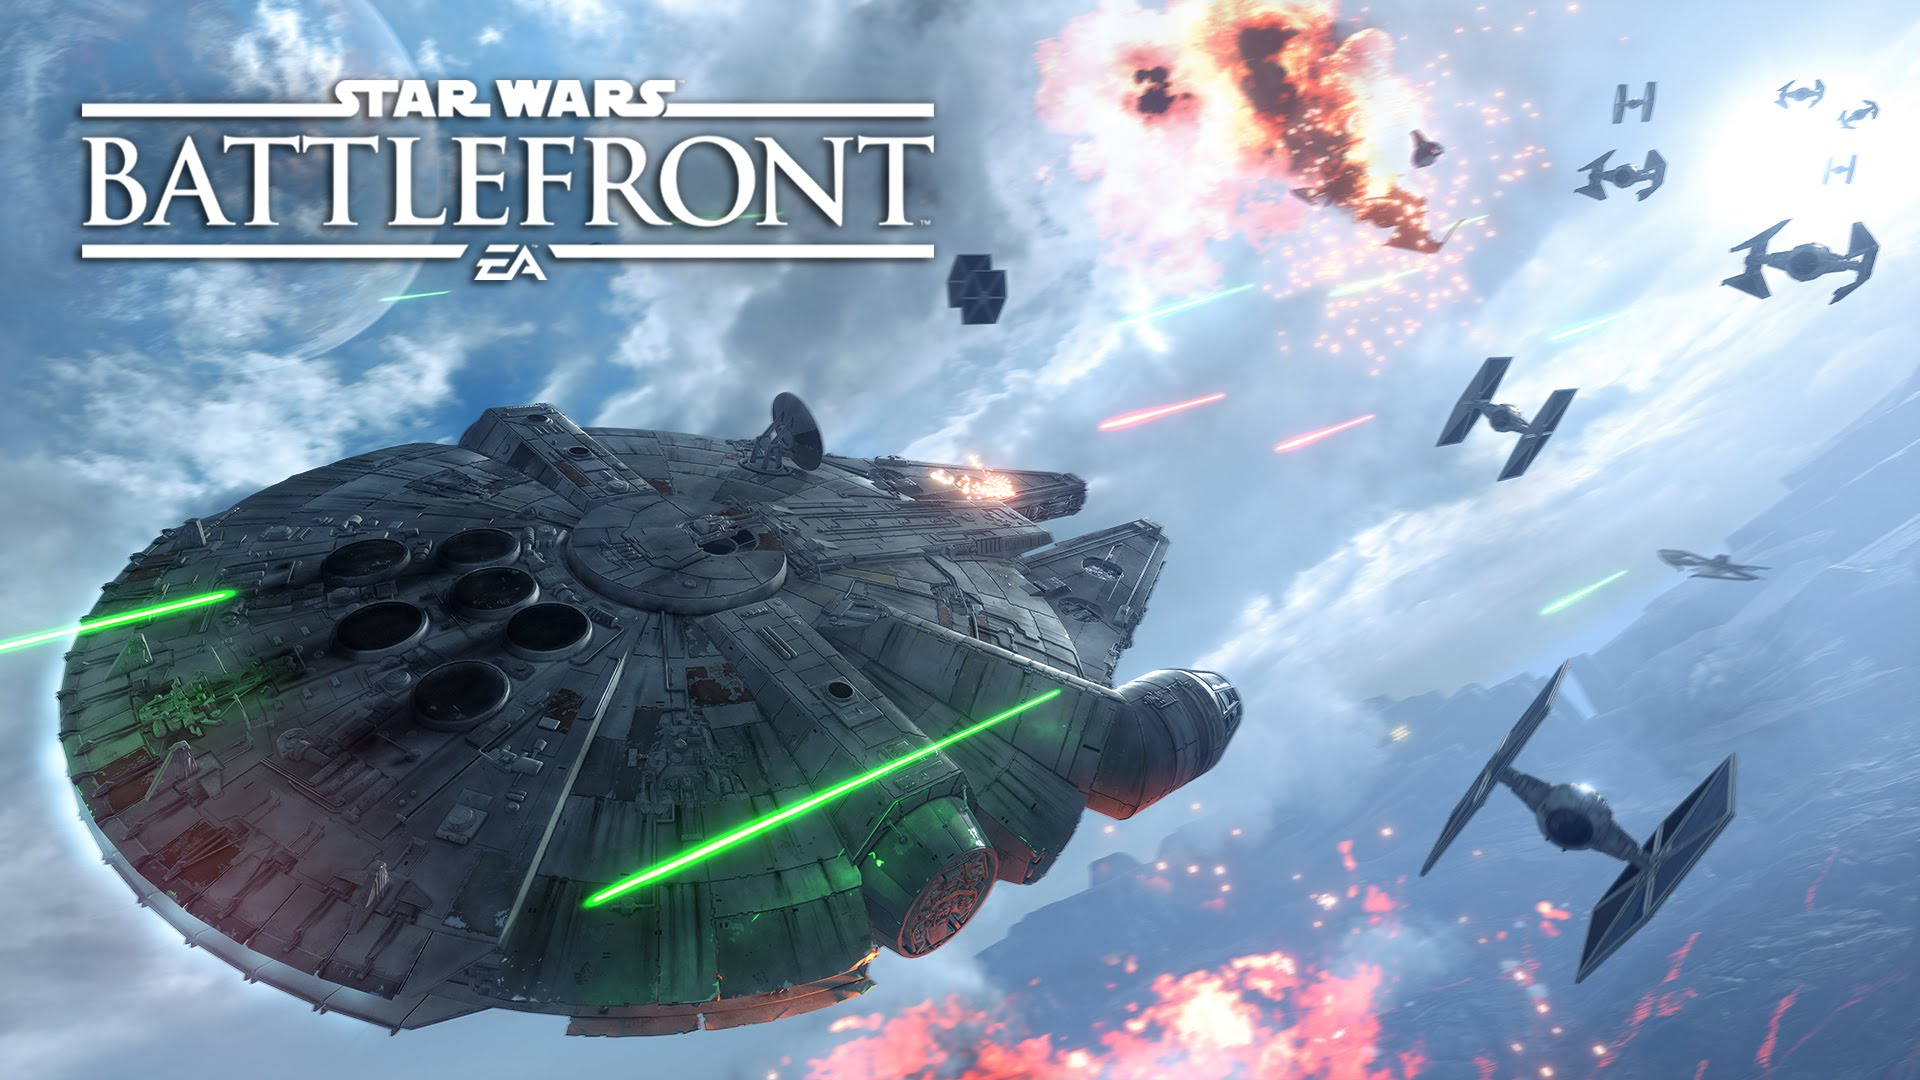 Star Wars Battlefront is Live, Let's Play!